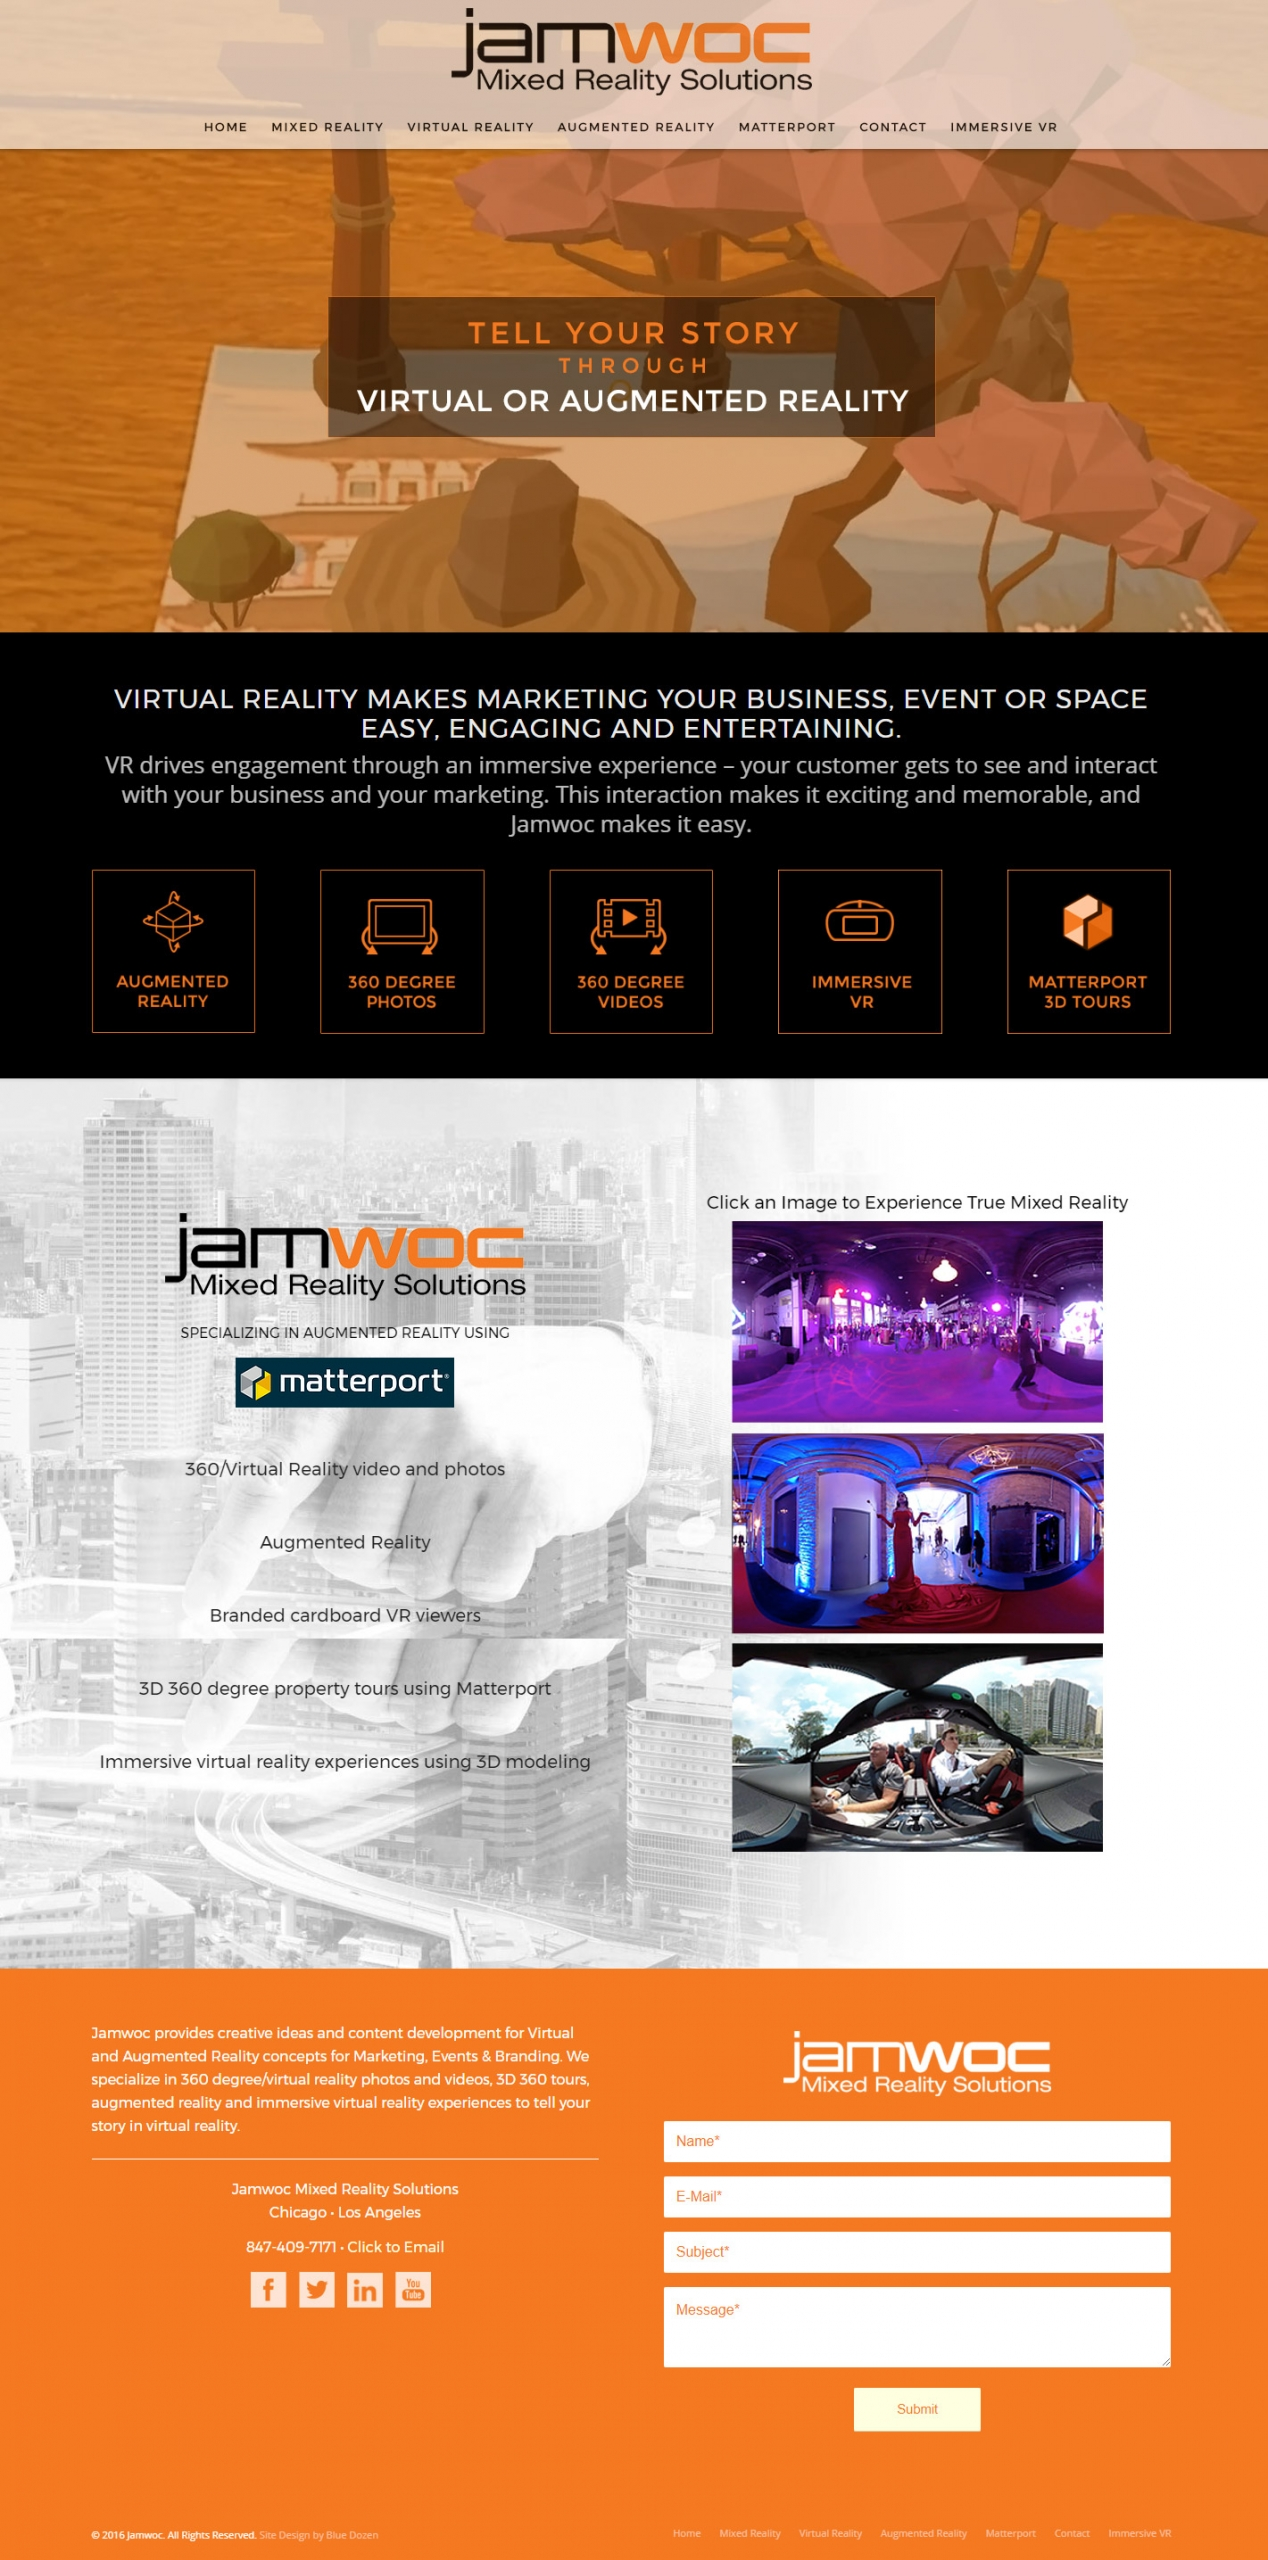 Web Design - JAMWOC Chicago